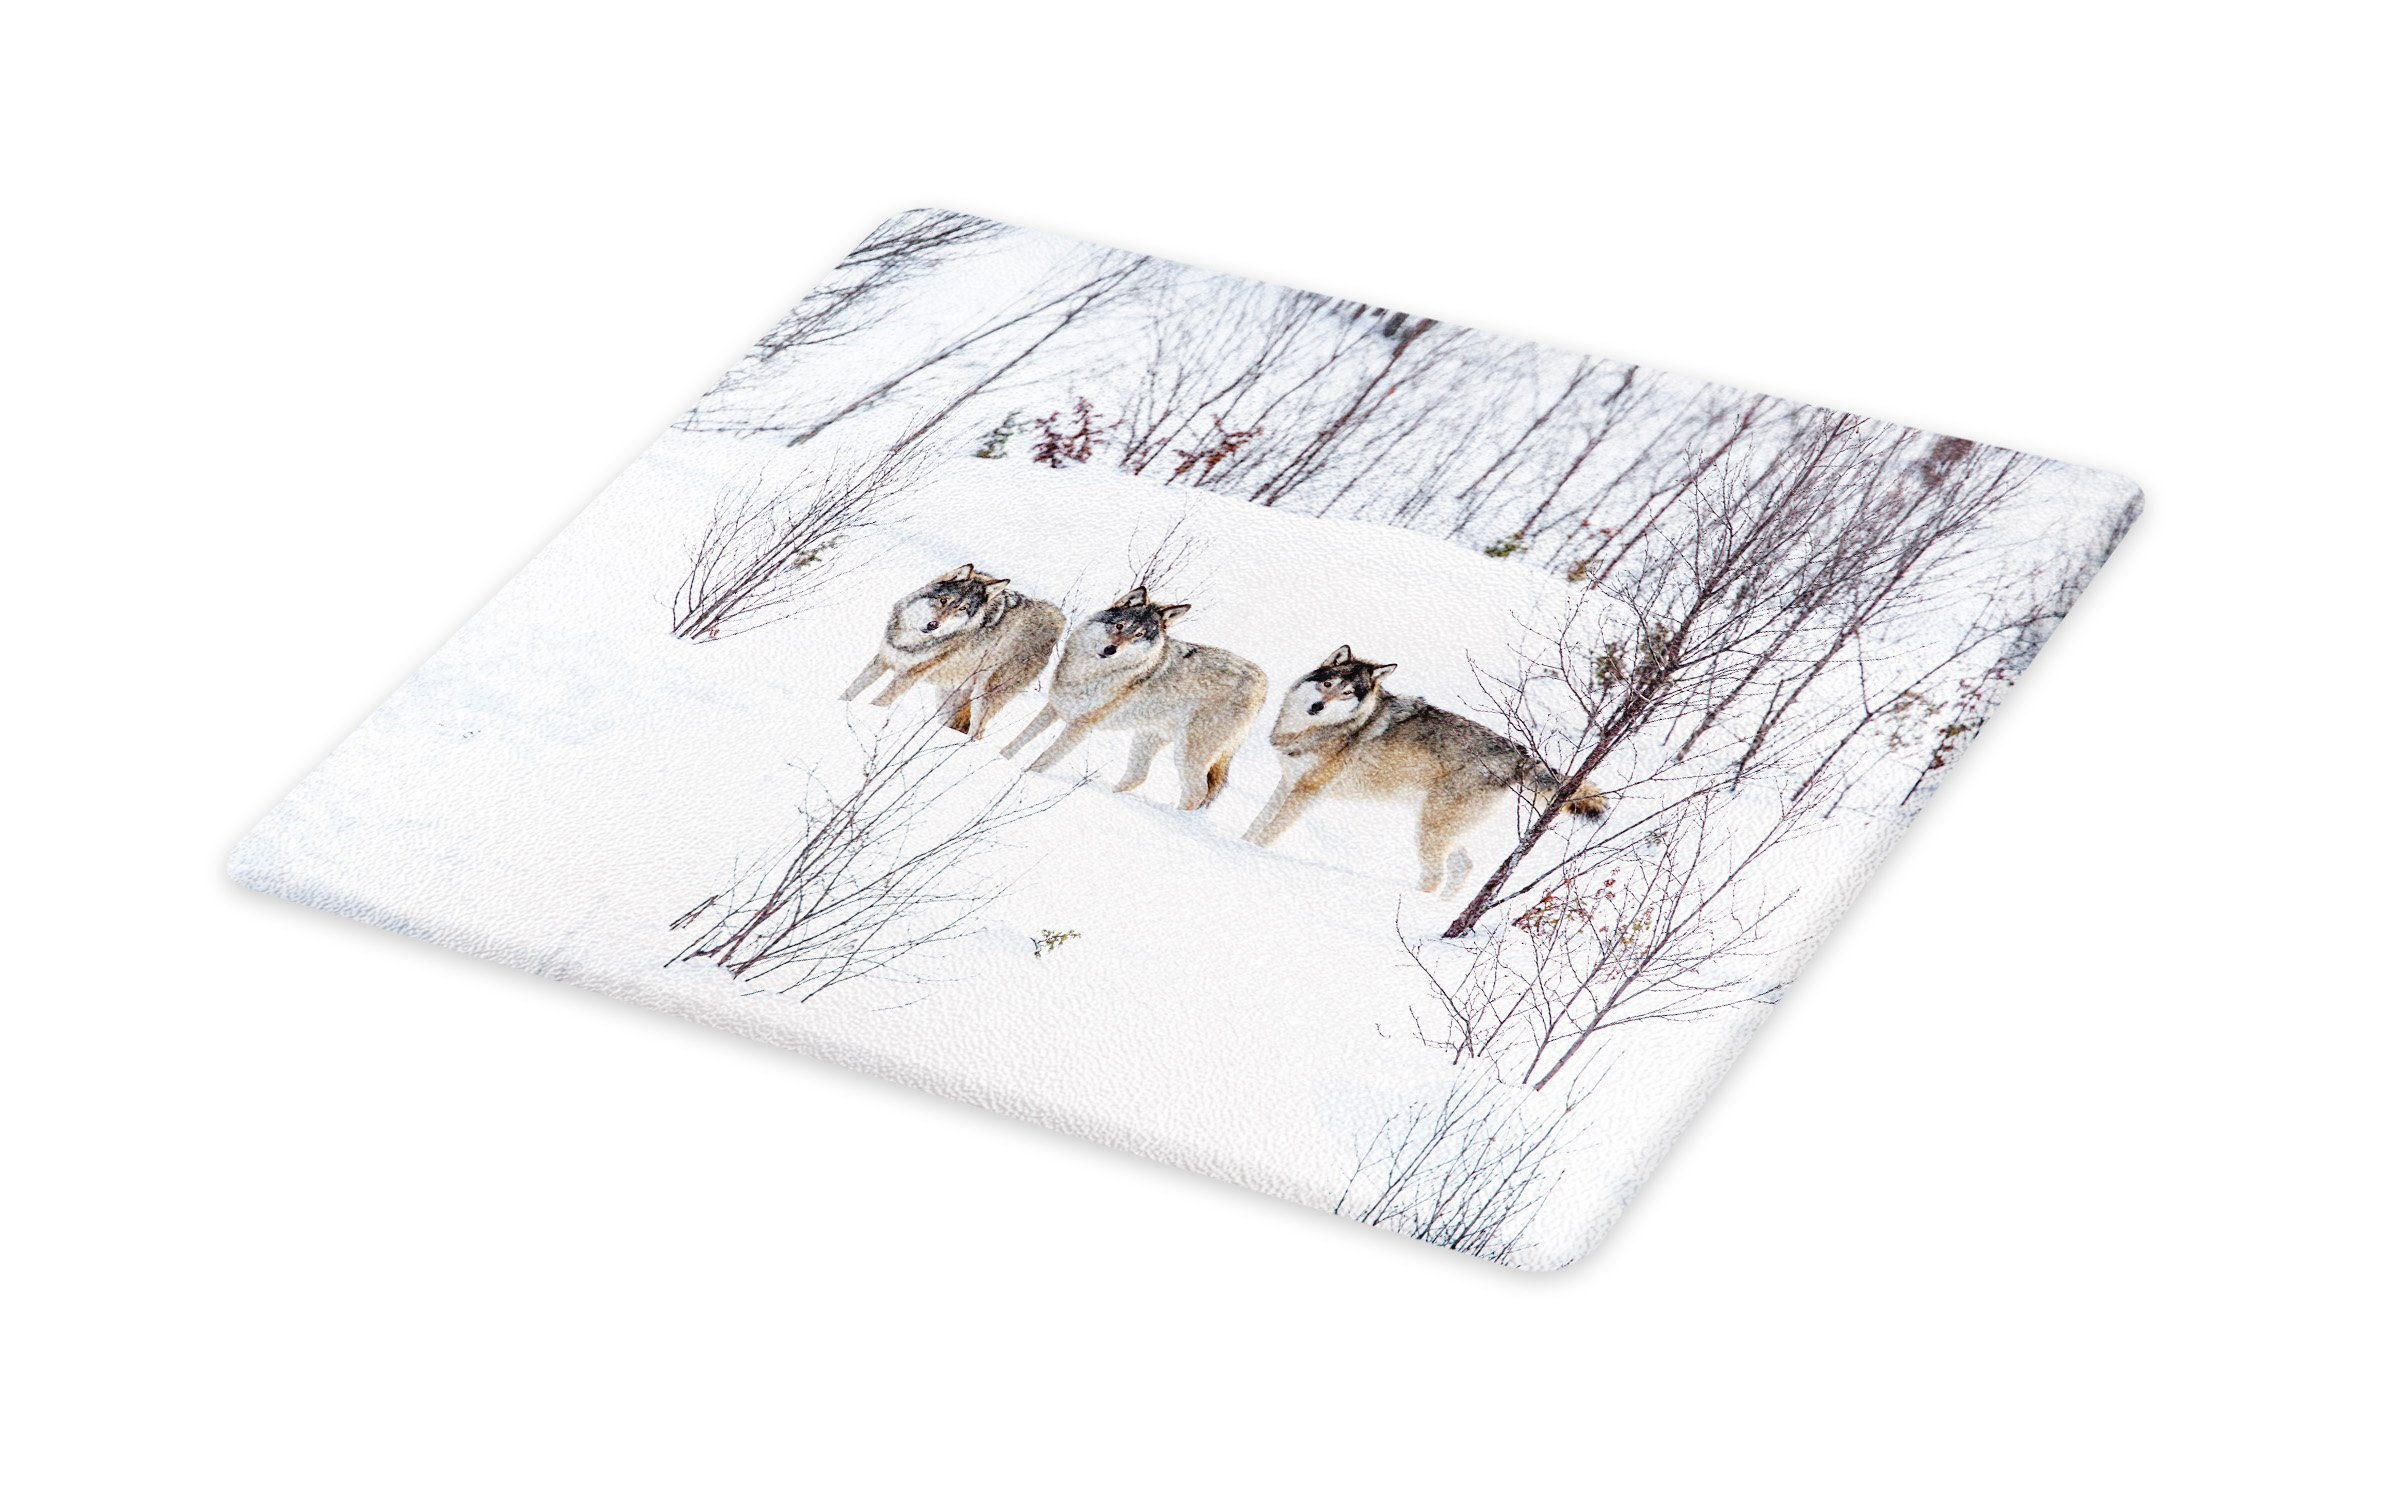 Lunarable Winter Cutting Board, Wild Wolves Walking on The Snowy Valley Northern Scandinavian Wilderness Animals Design, Decorative Tempered Glass Cutting and Serving Board, Large Size, White